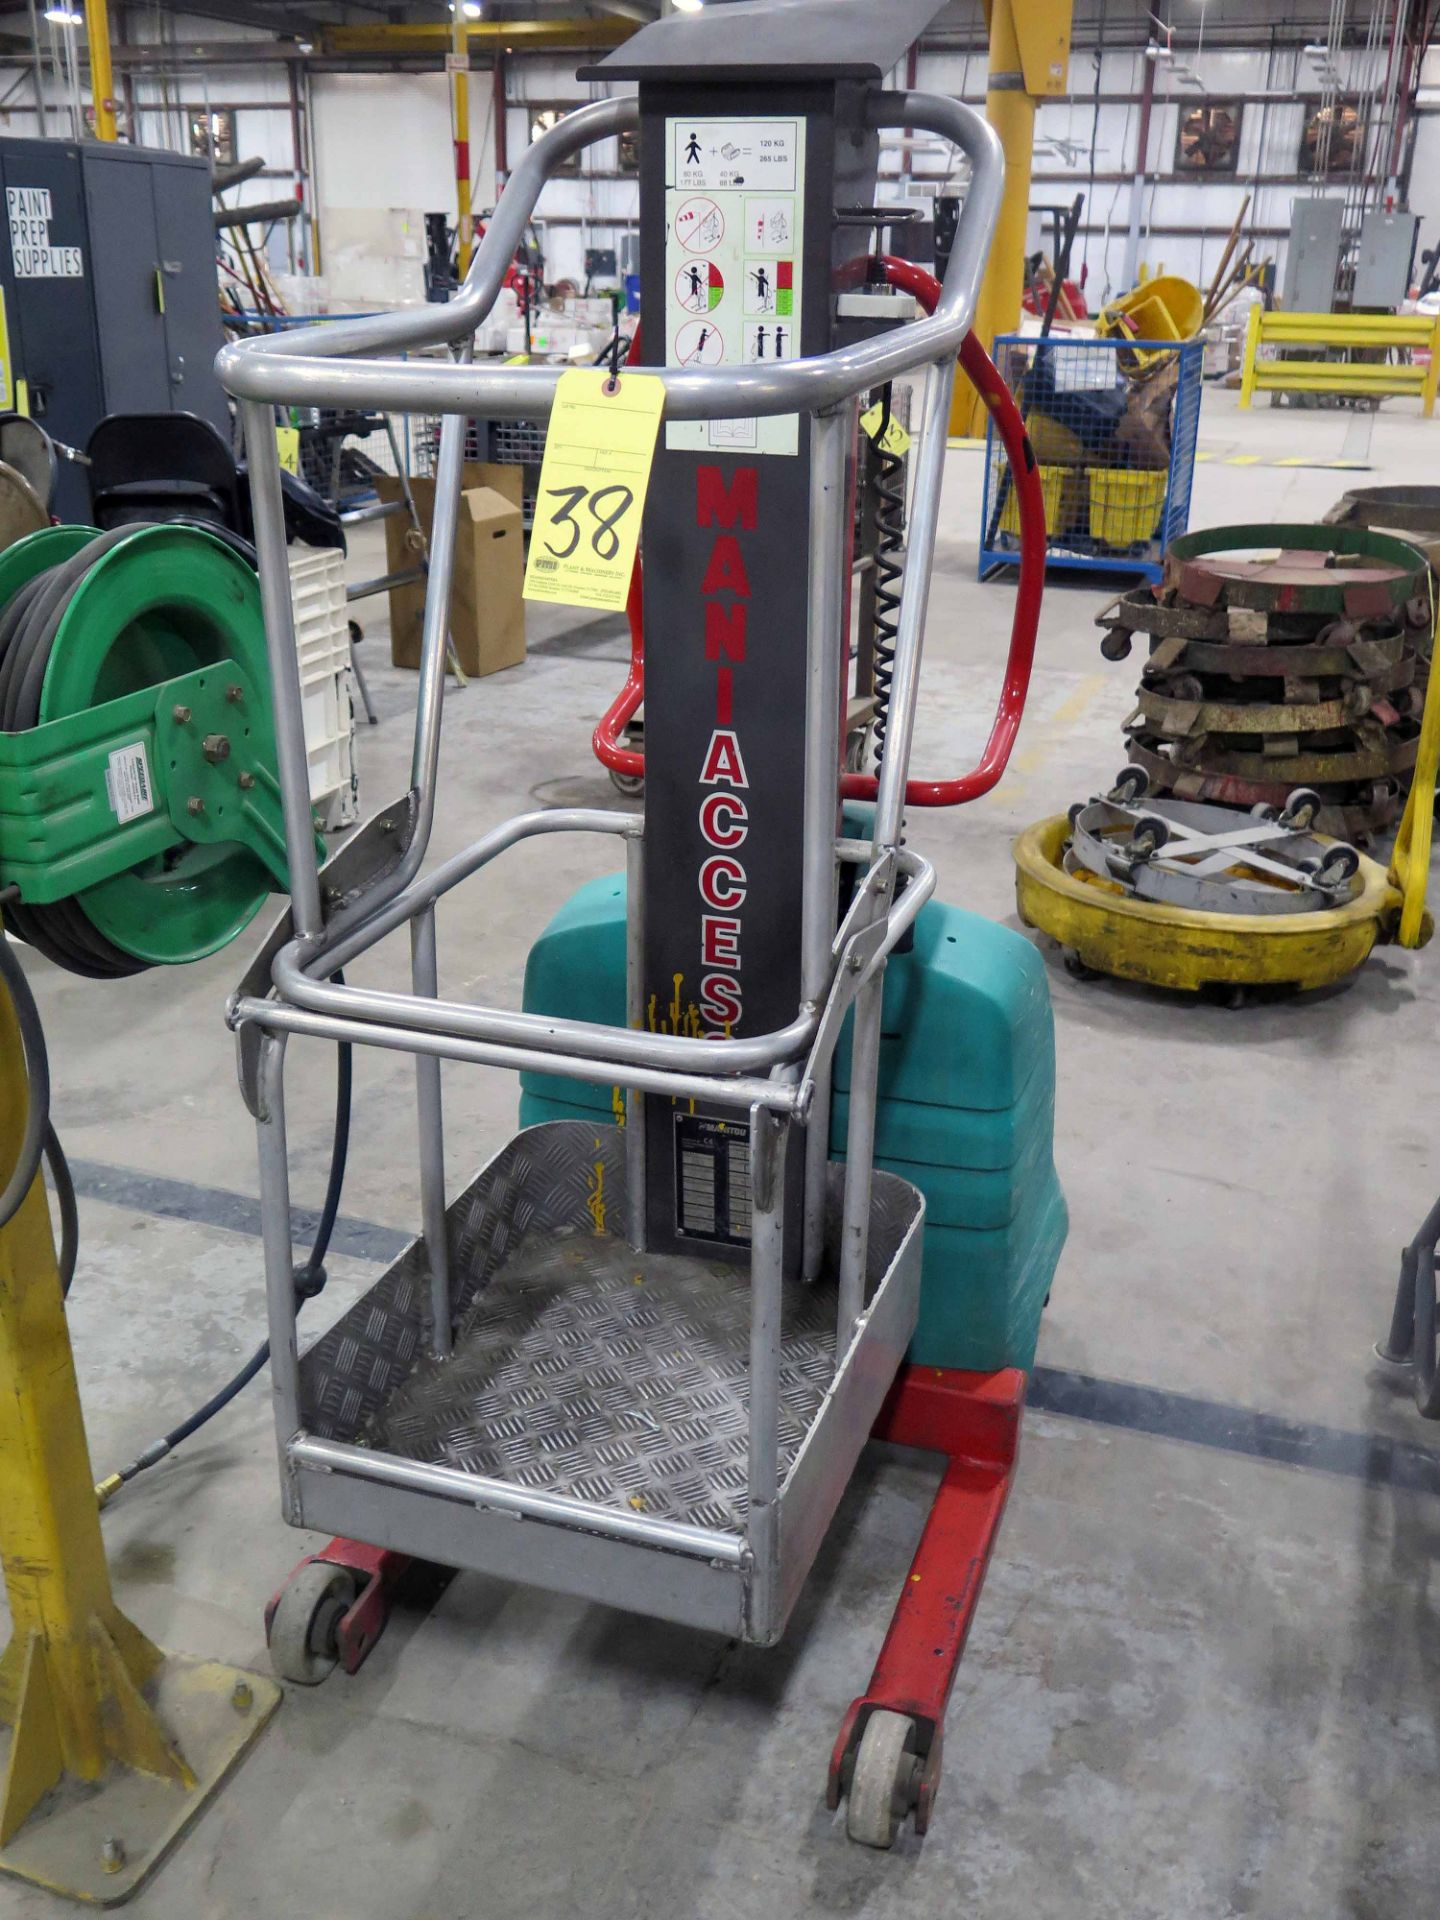 MANITOU ELECTRIC MANLIFT, MDL. SCALA, new 2005, 265 lb. cap., S/N 506986